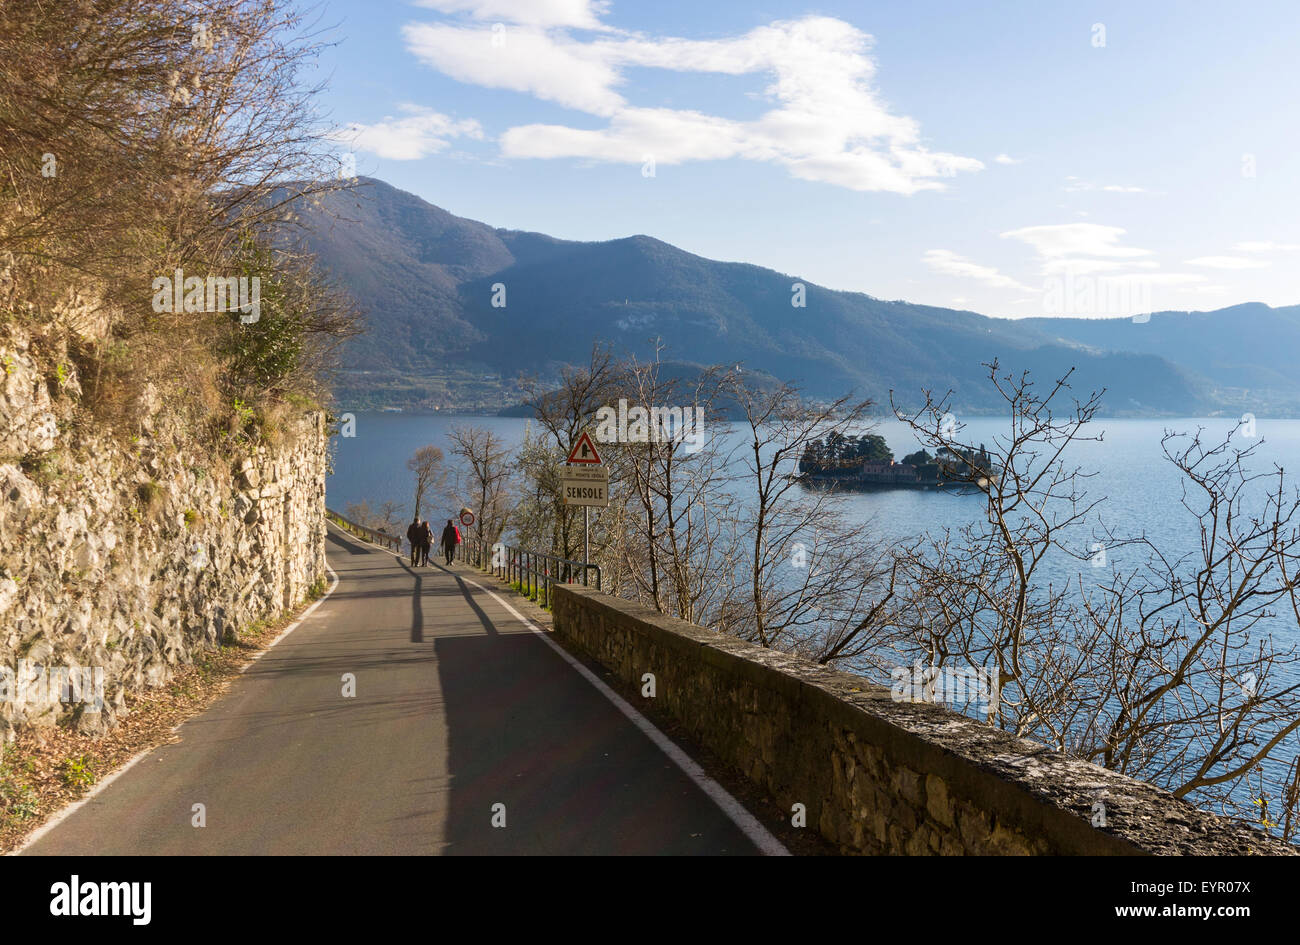 Italy, Lombardy, Iseo lake, Isola di Loreto viewed from Monte Isola - Stock Image